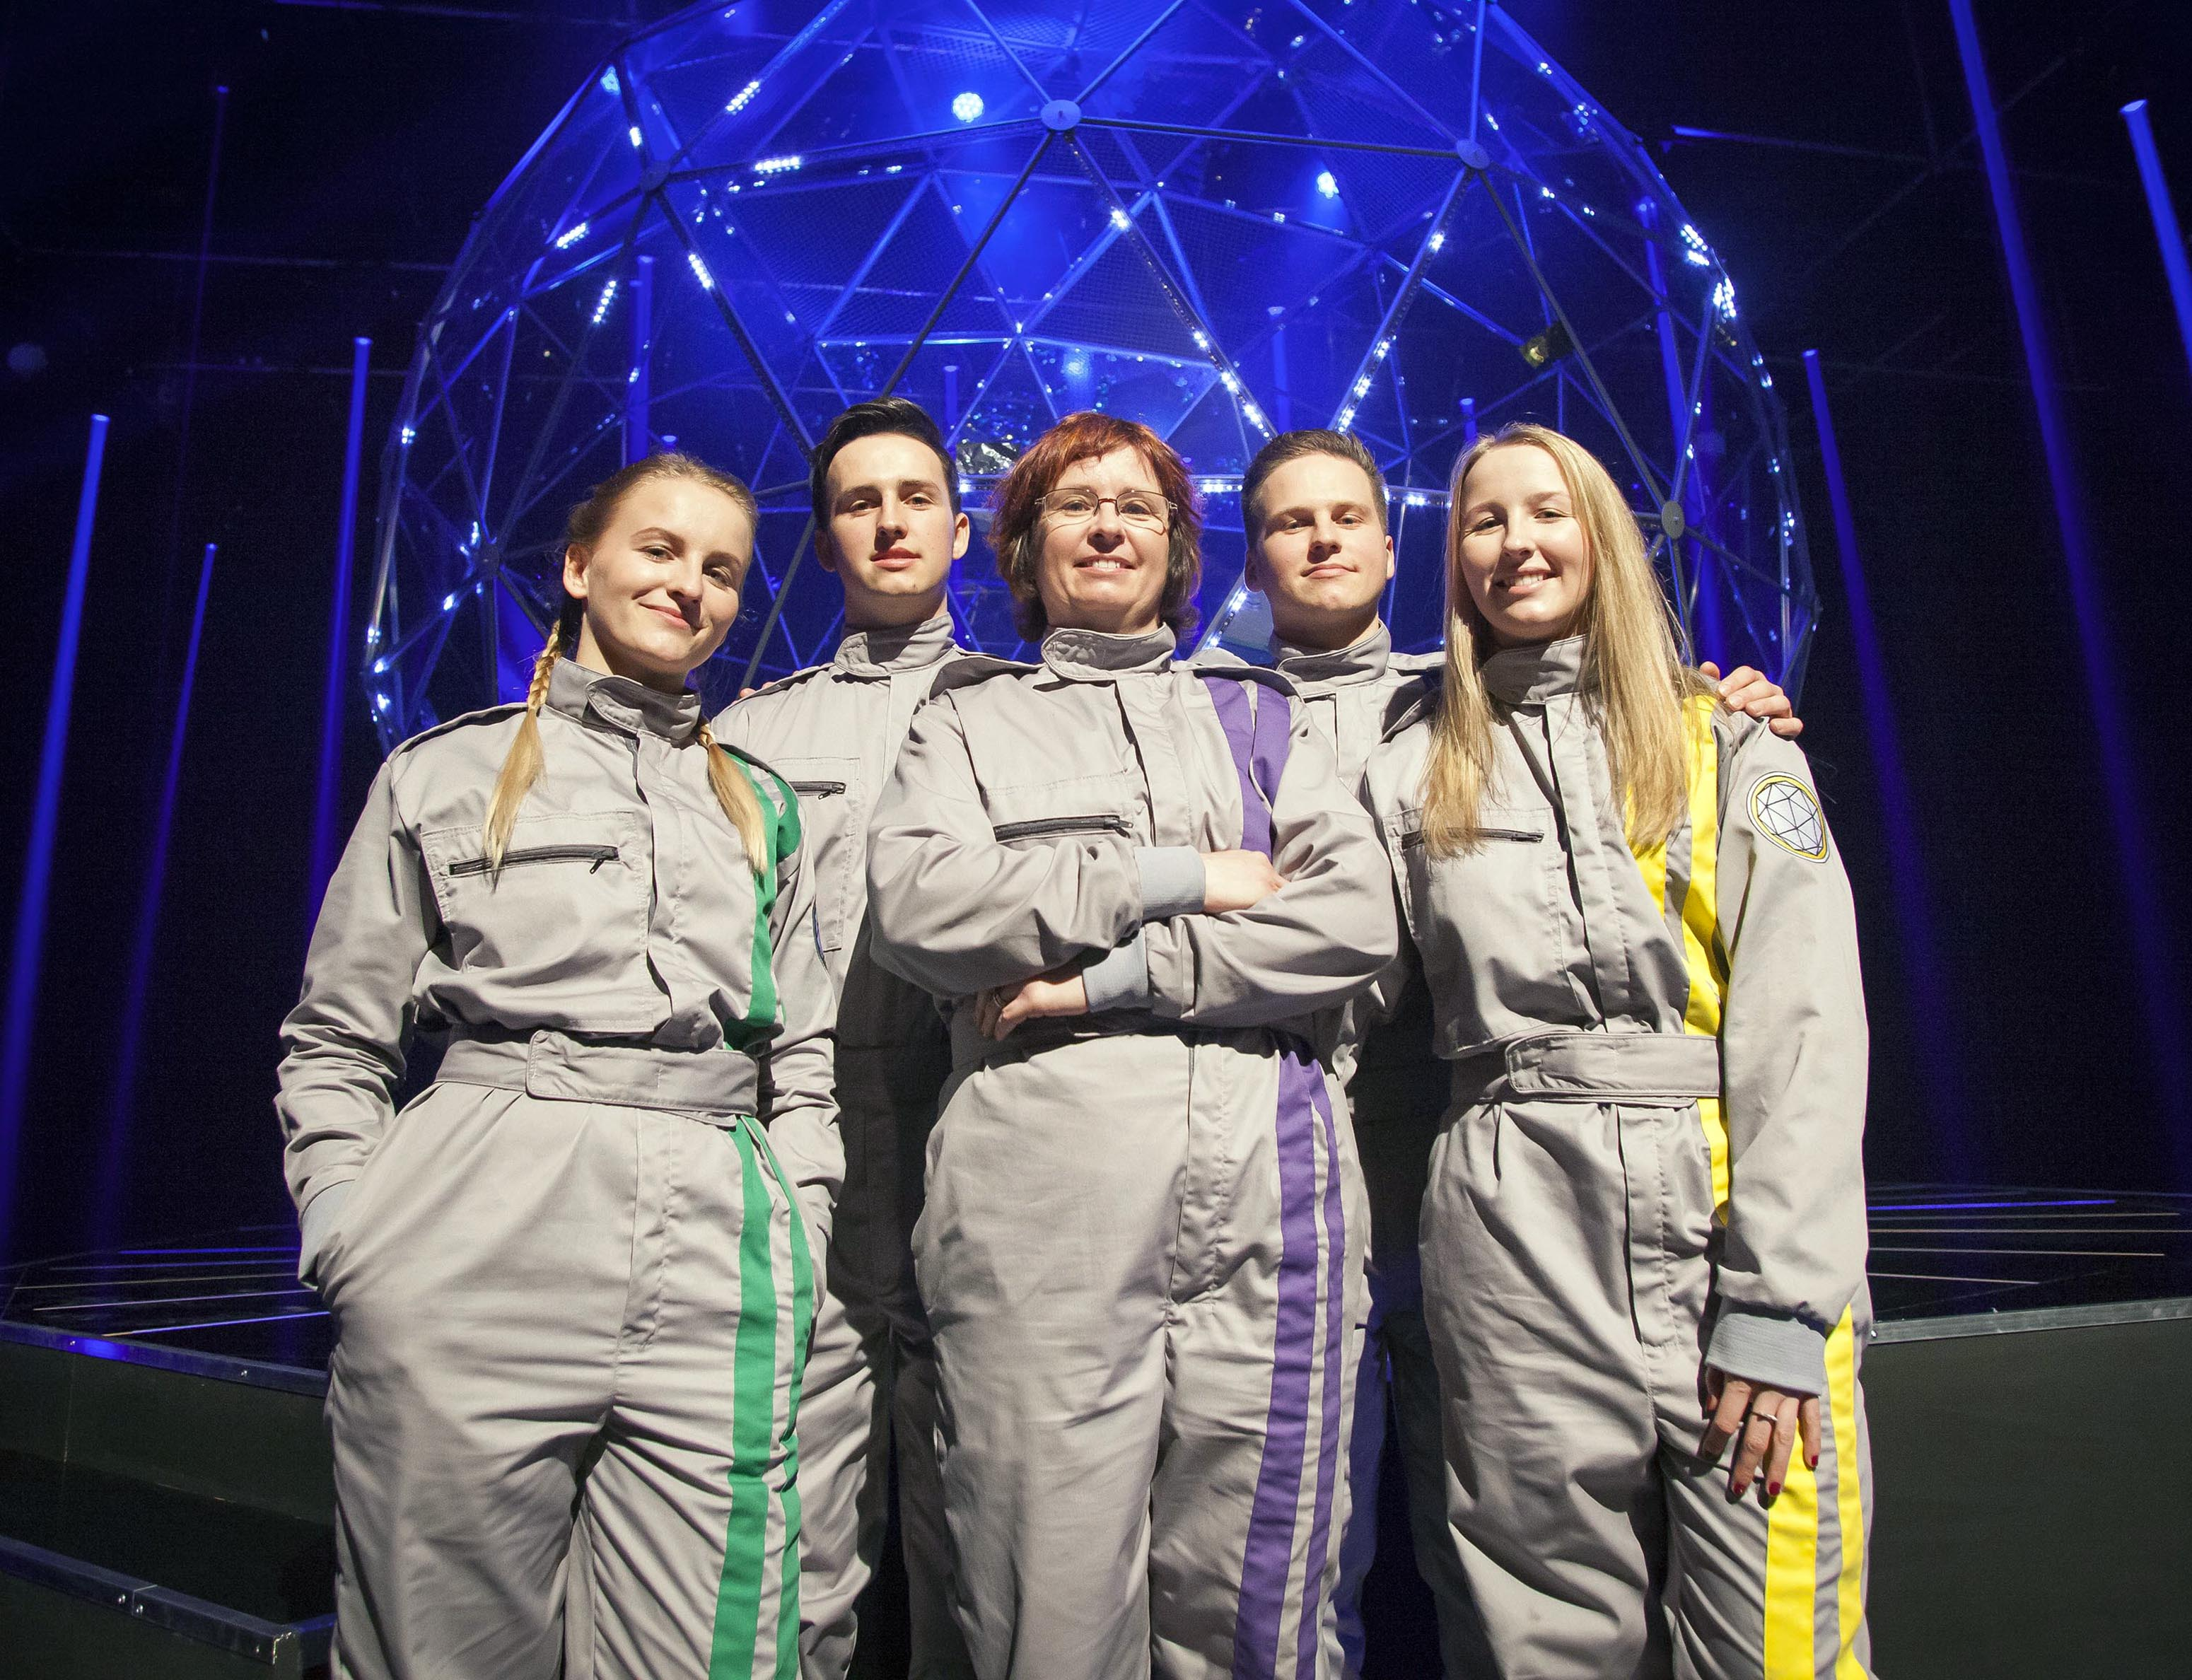 Crystal Maze viewers reckon the show is much better 'without the Z list celebrities'